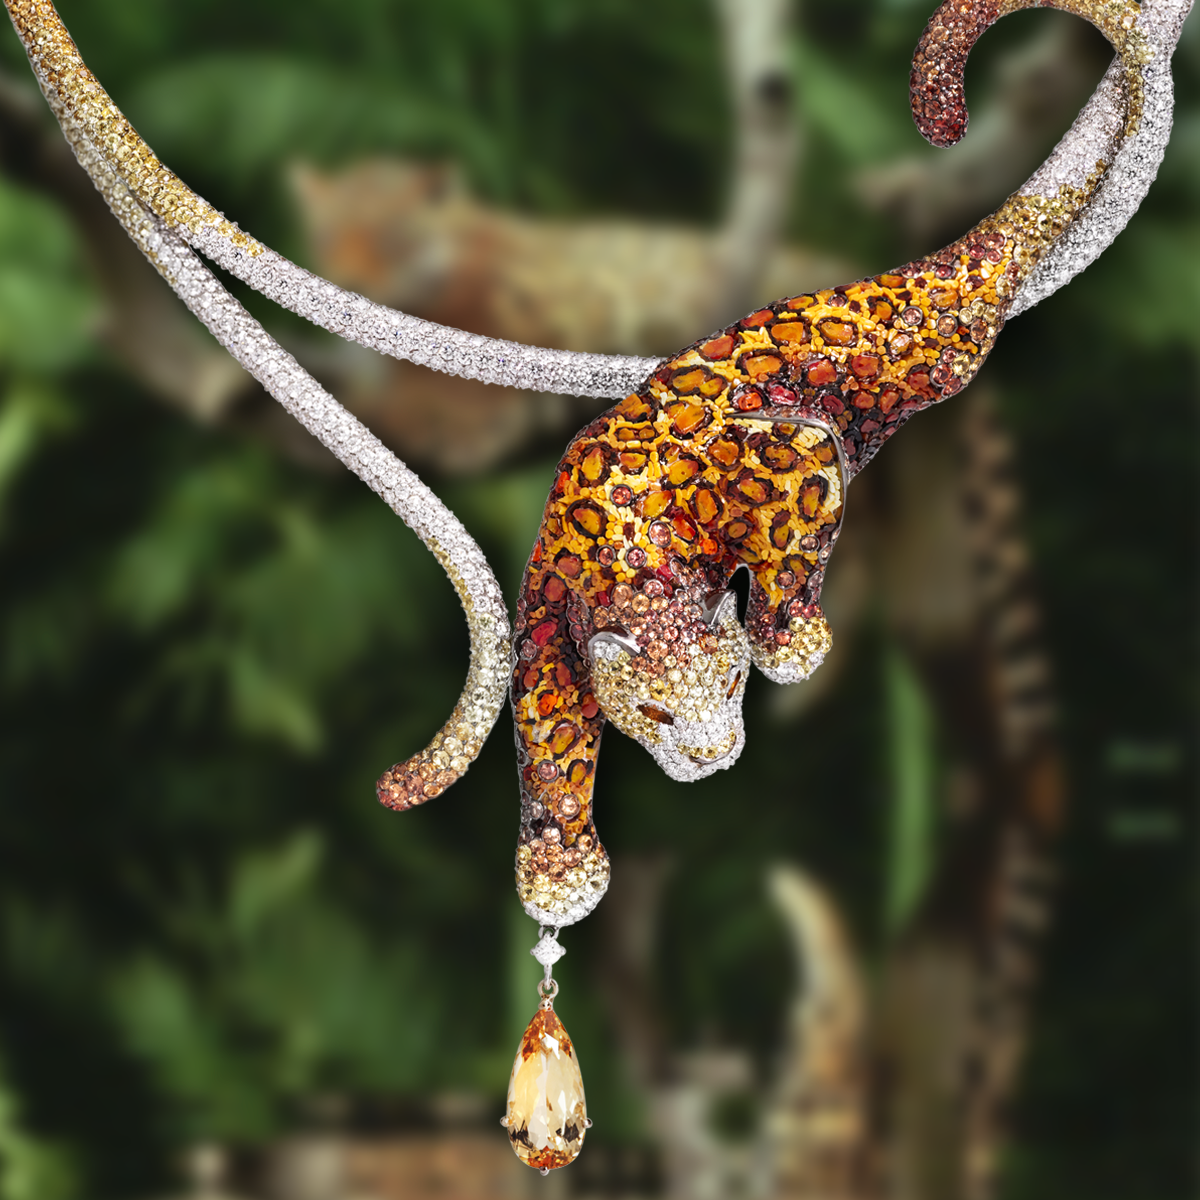 2abcd11bd #Elegance, strength, agility, freedom, this is what makes the Tanzanian # leopard such a unique and beautiful animal and what inspired us to design  Damisa, ...